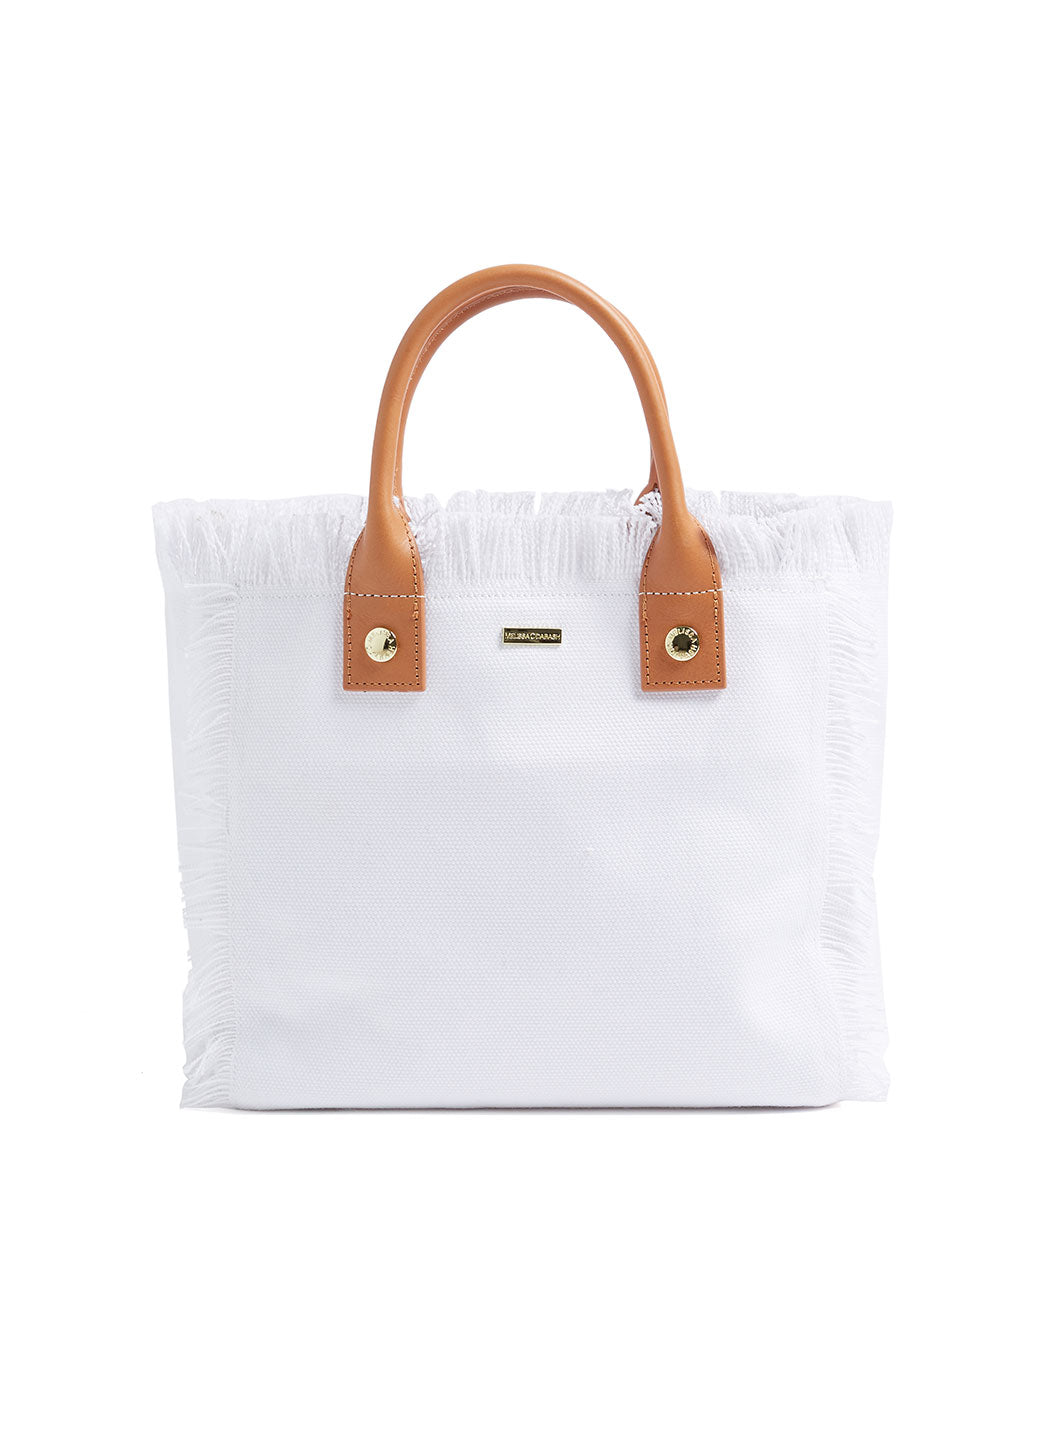 Porto cervo Mini Beach Tote White